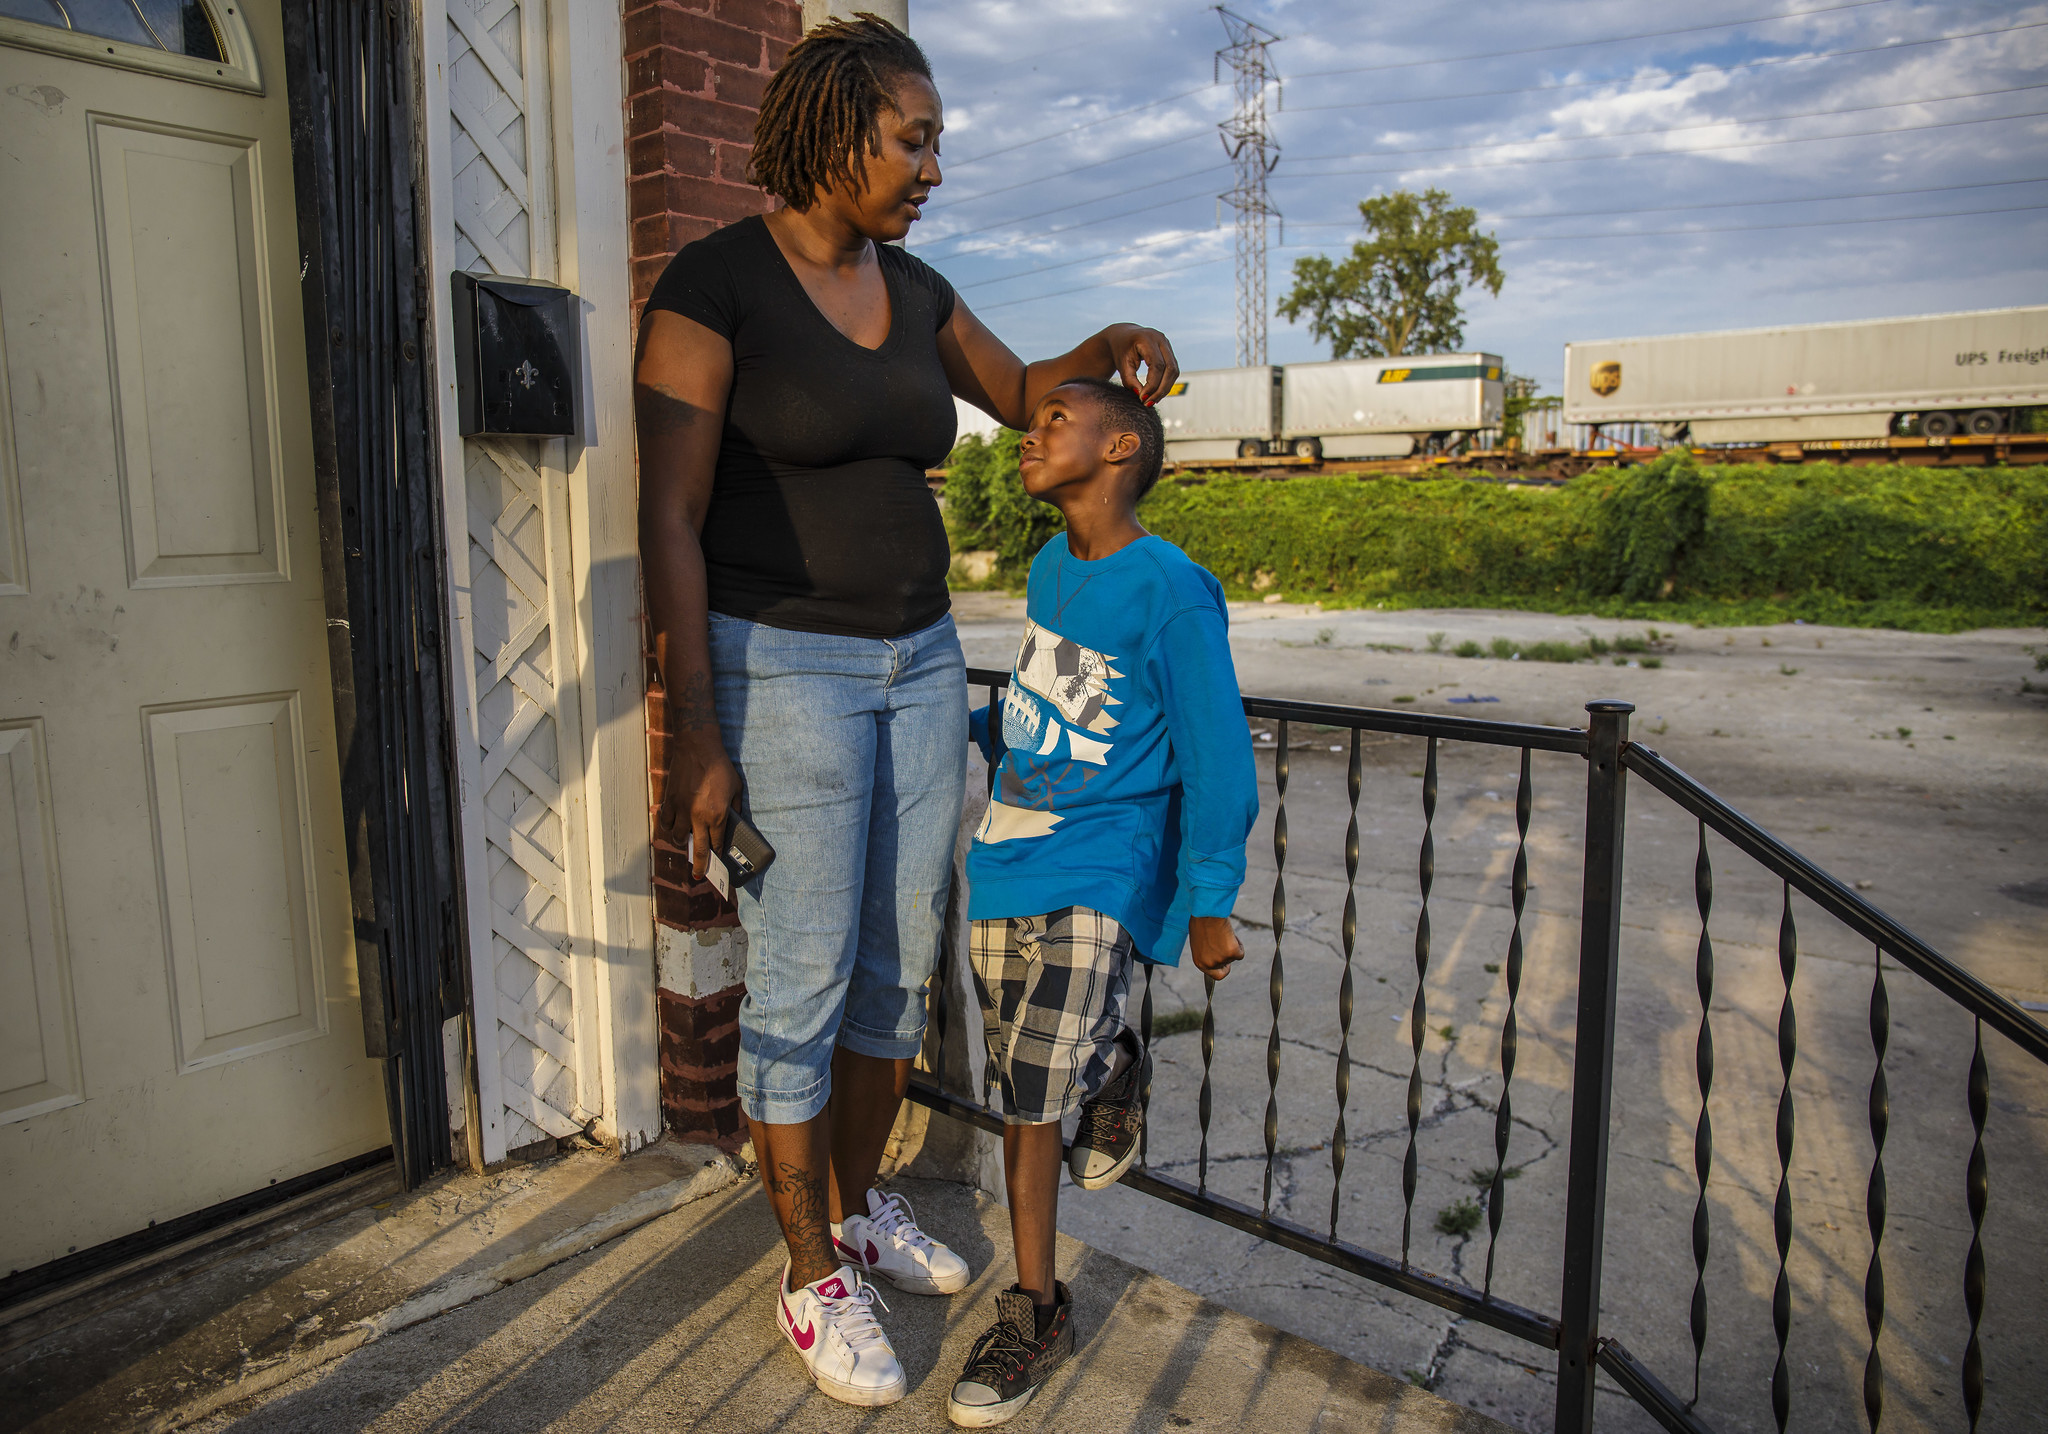 Back to previous page home garfield holiday celebrations - Nine Year Old Eddion Leaned Against His Mother Angela Rankins On The Stoop Of Their East Garfield Park Row House Asking For A Quarter To Follow His